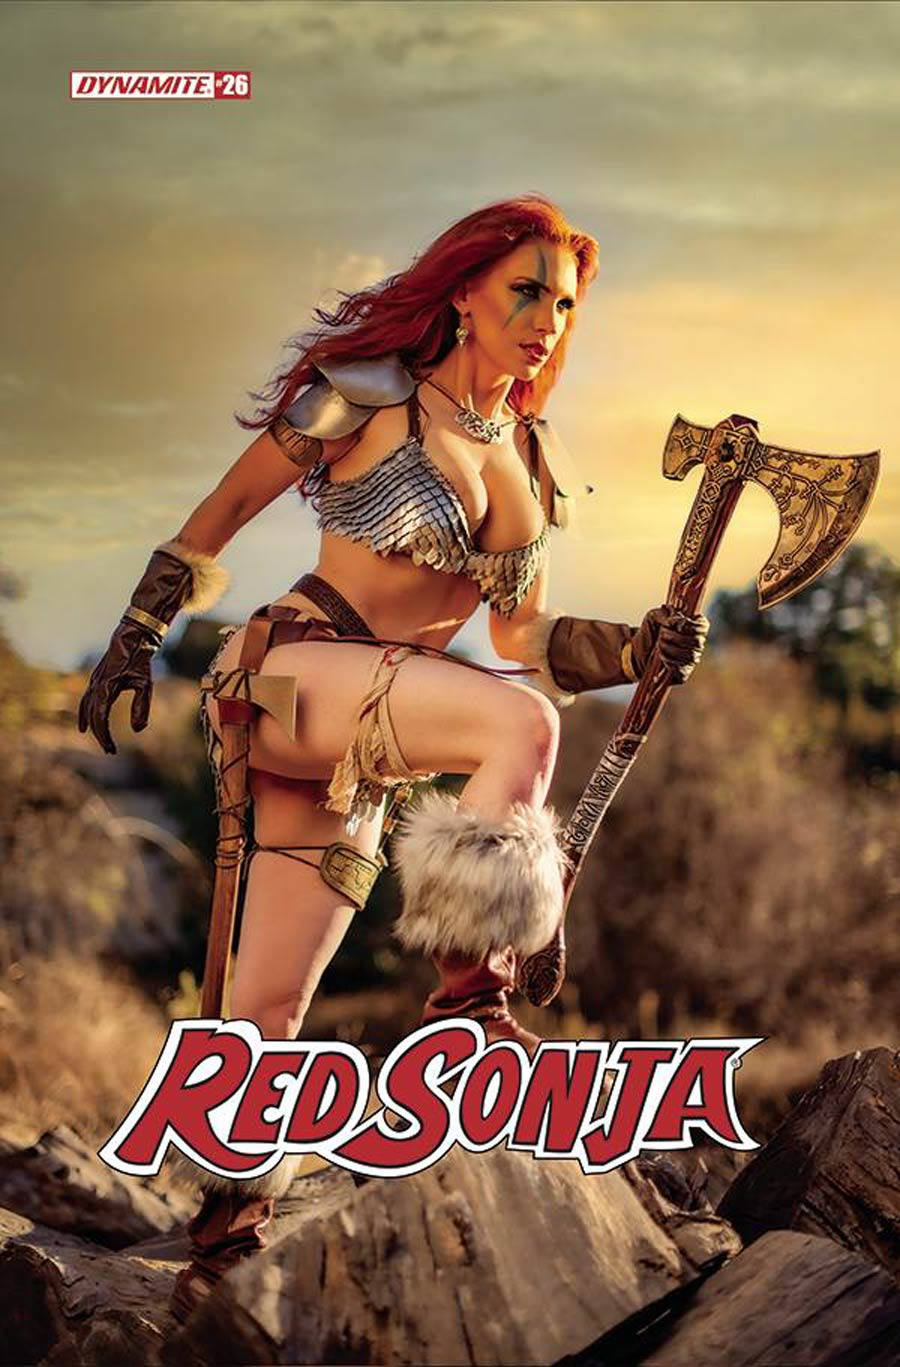 Red Sonja Vol 8 #26 Cover E Variant Gracie The Cosplay Lass Cosplay Photo Cover